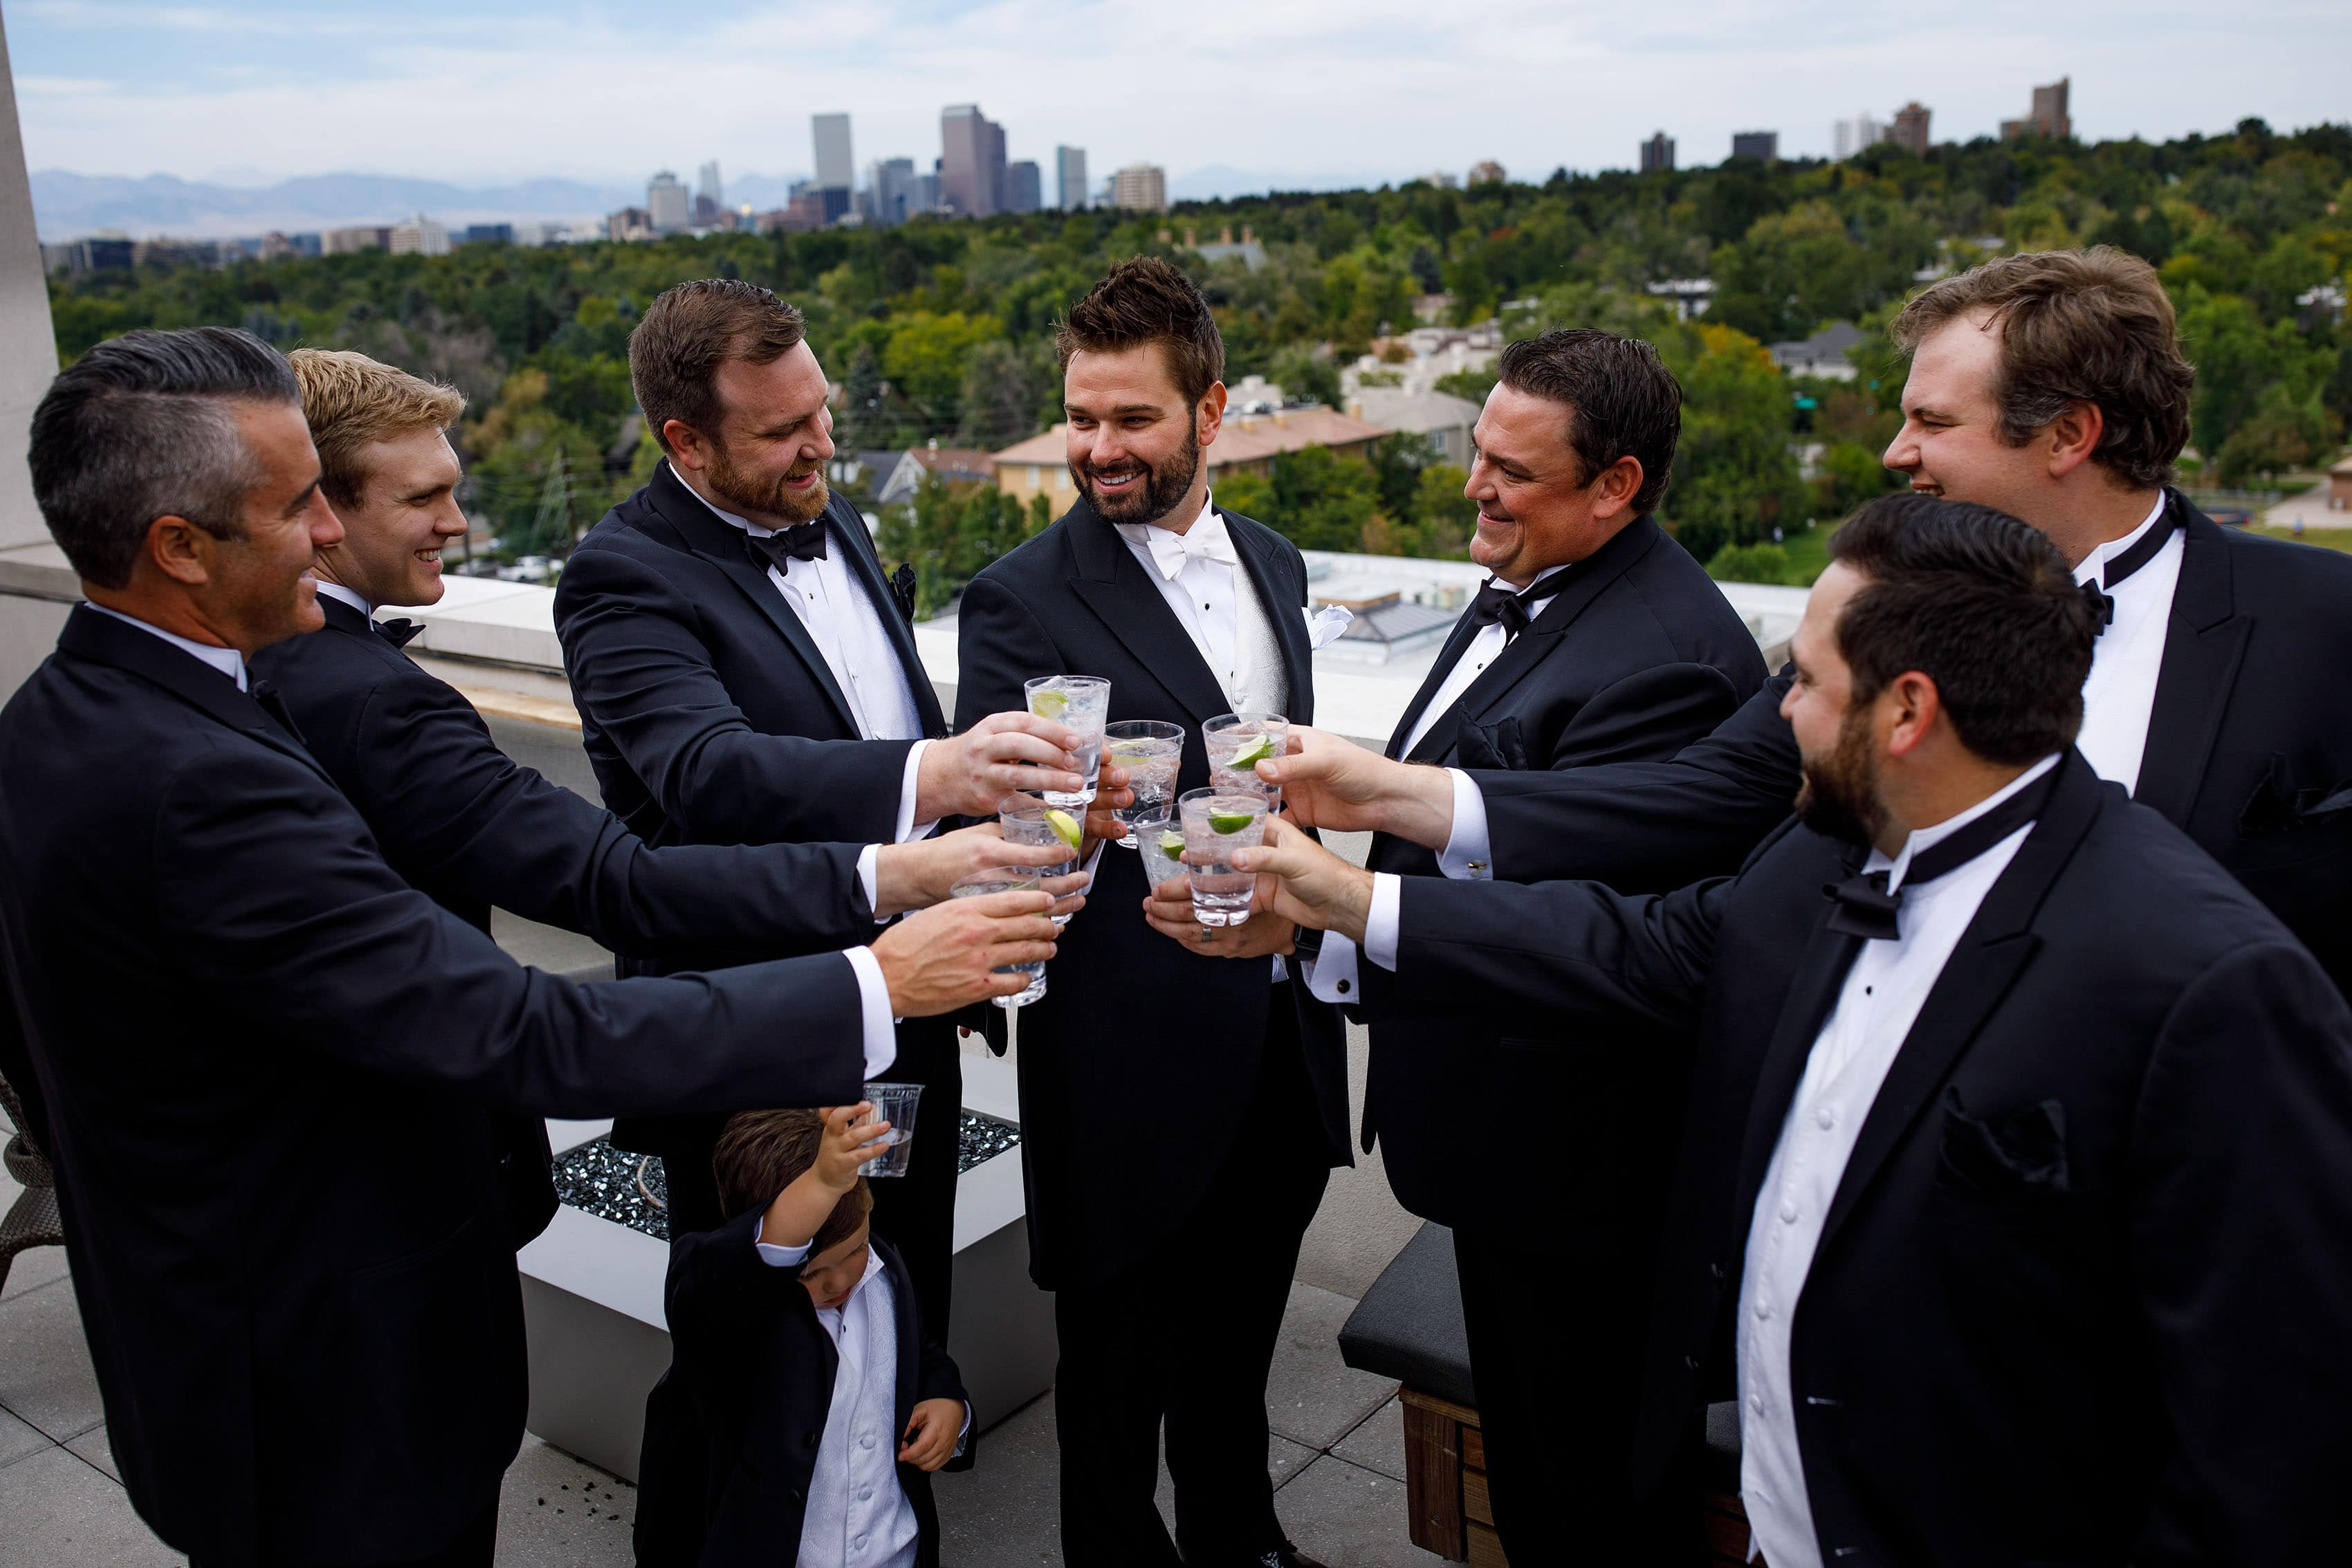 The groom and groomsmen toast from the rooftop at the Halcyon hotel in Denver before the wedding